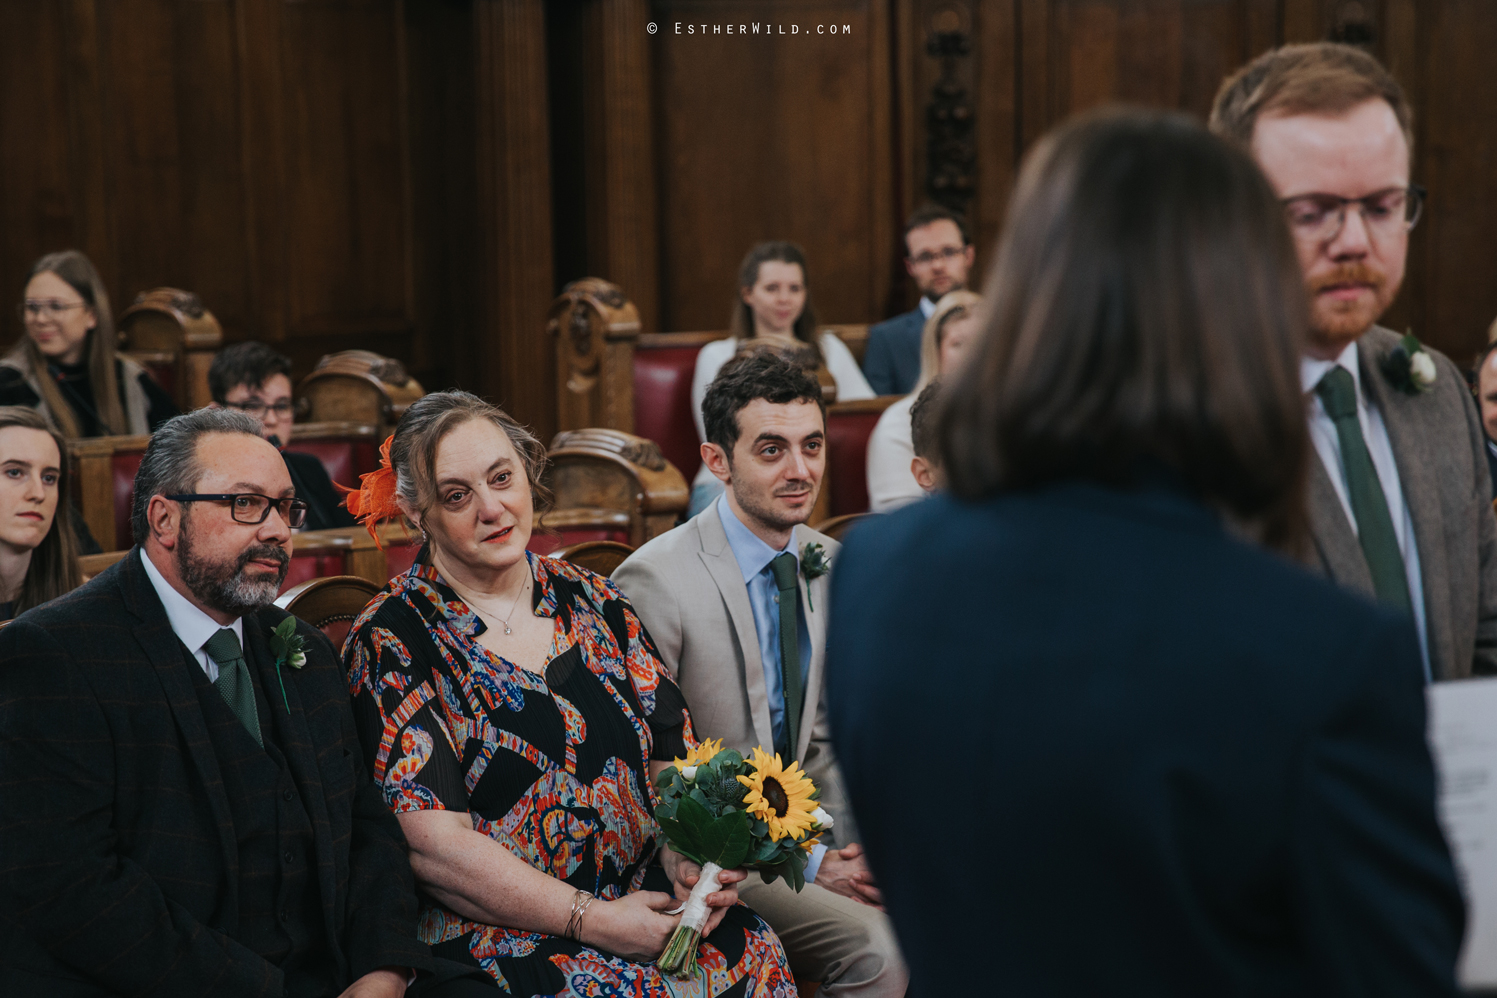 Islington_Town_Hall_Assembly_Hall_Council_Chamber_The_Star_Pub_London_Sacred_Wedding_Copyright_Esther_Wild_Photographer_IMG_0317.jpg